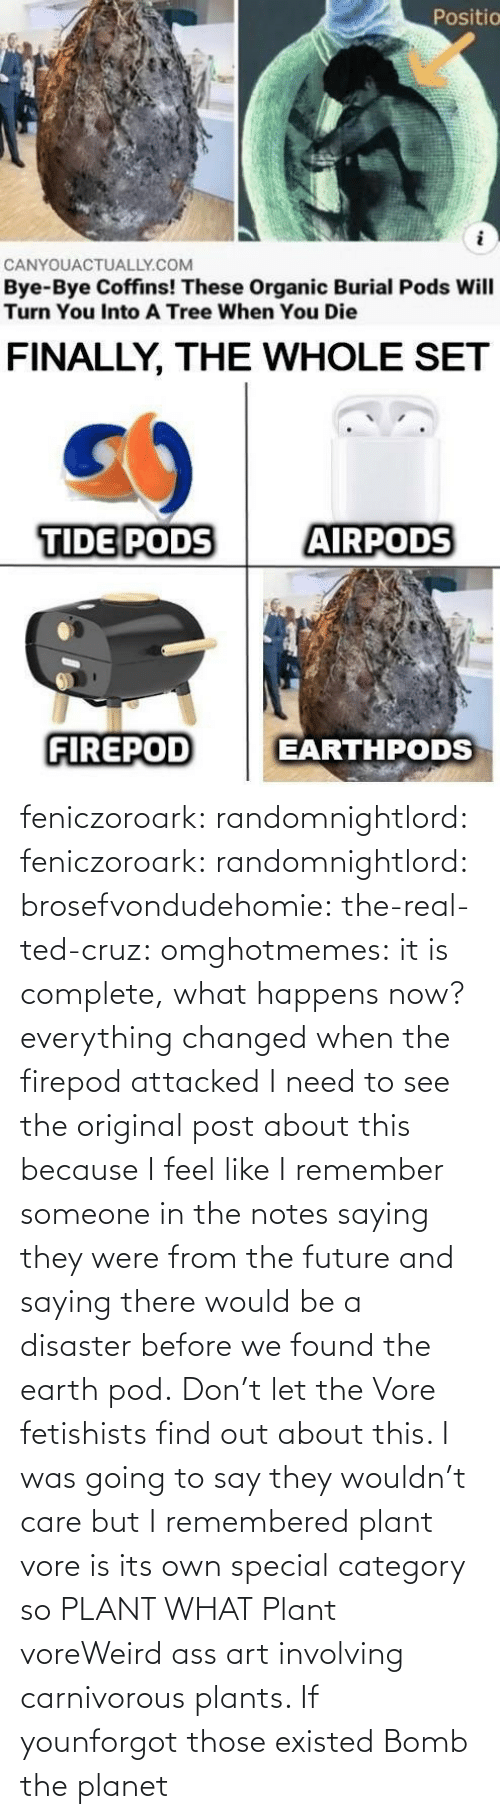 weird: feniczoroark:  randomnightlord:  feniczoroark:  randomnightlord:  brosefvondudehomie: the-real-ted-cruz:  omghotmemes: it is complete, what happens now? everything changed when the firepod attacked    I need to see the original post about this because I feel like I remember someone in the notes saying they were from the future and saying there would be a disaster before we found the earth pod.    Don't let the Vore fetishists find out about this.    I was going to say they wouldn't care but I remembered plant vore is its own special category so   PLANT WHAT   Plant voreWeird ass art involving carnivorous plants. If younforgot those existed   Bomb the planet